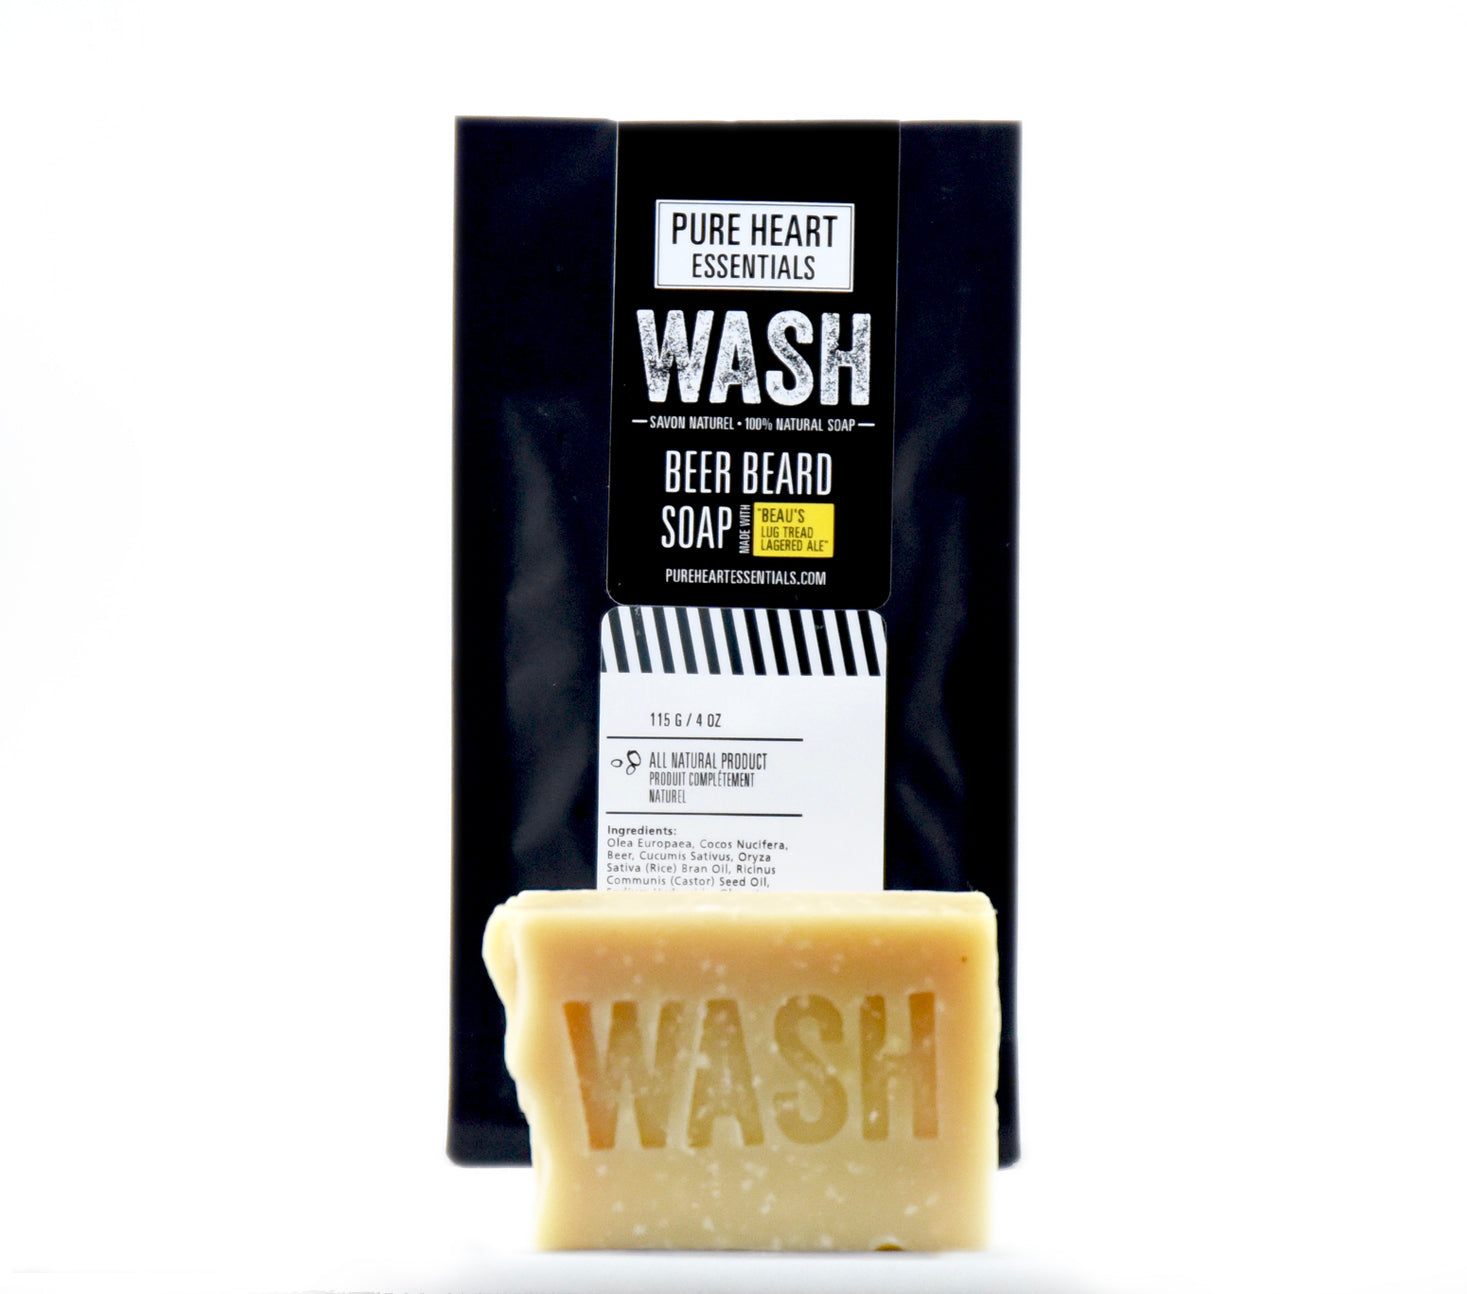 WASH – BEER BEARD SOAP (VEGAN)